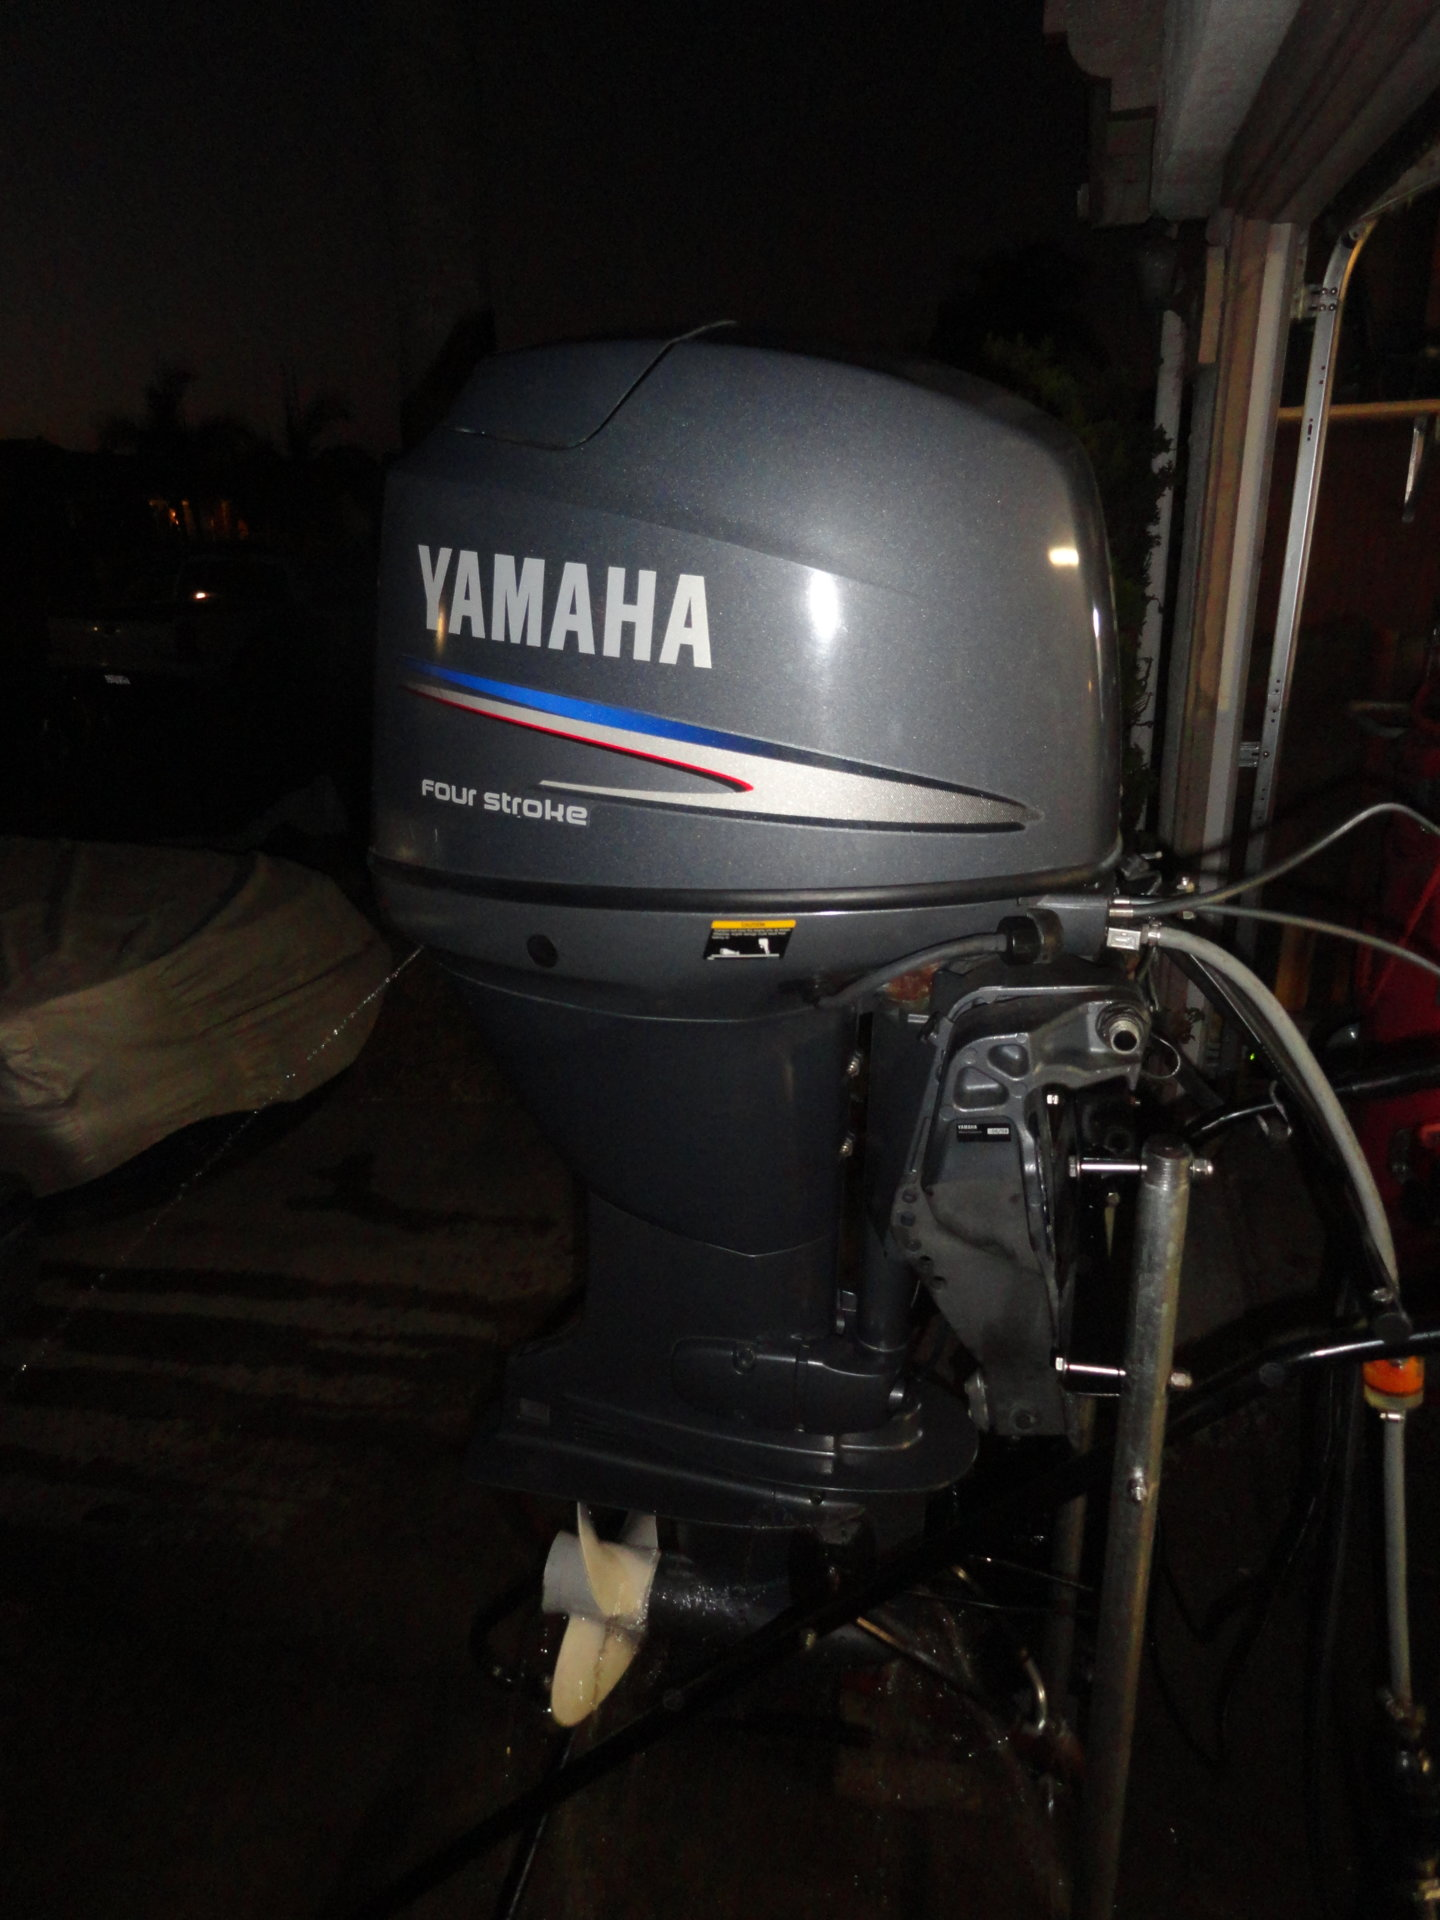 Yamaha f50 outboard motor 142 hours clean fuel injected for Yamaha outboard service san diego